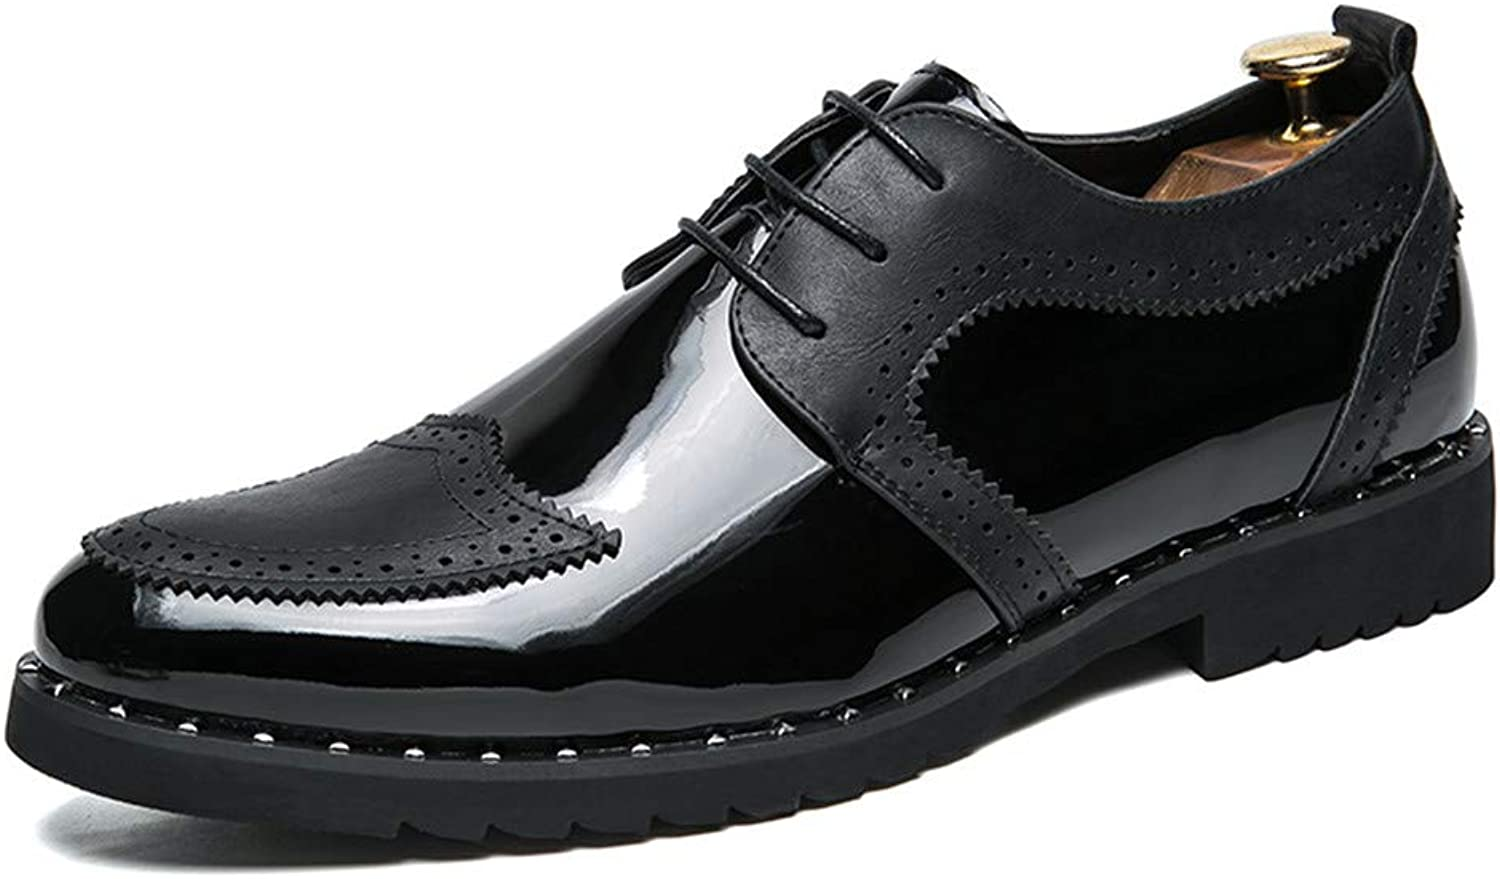 CHENXD shoes, Men's Fashionable British Style Oxfords Flat Heel Lace up shoes